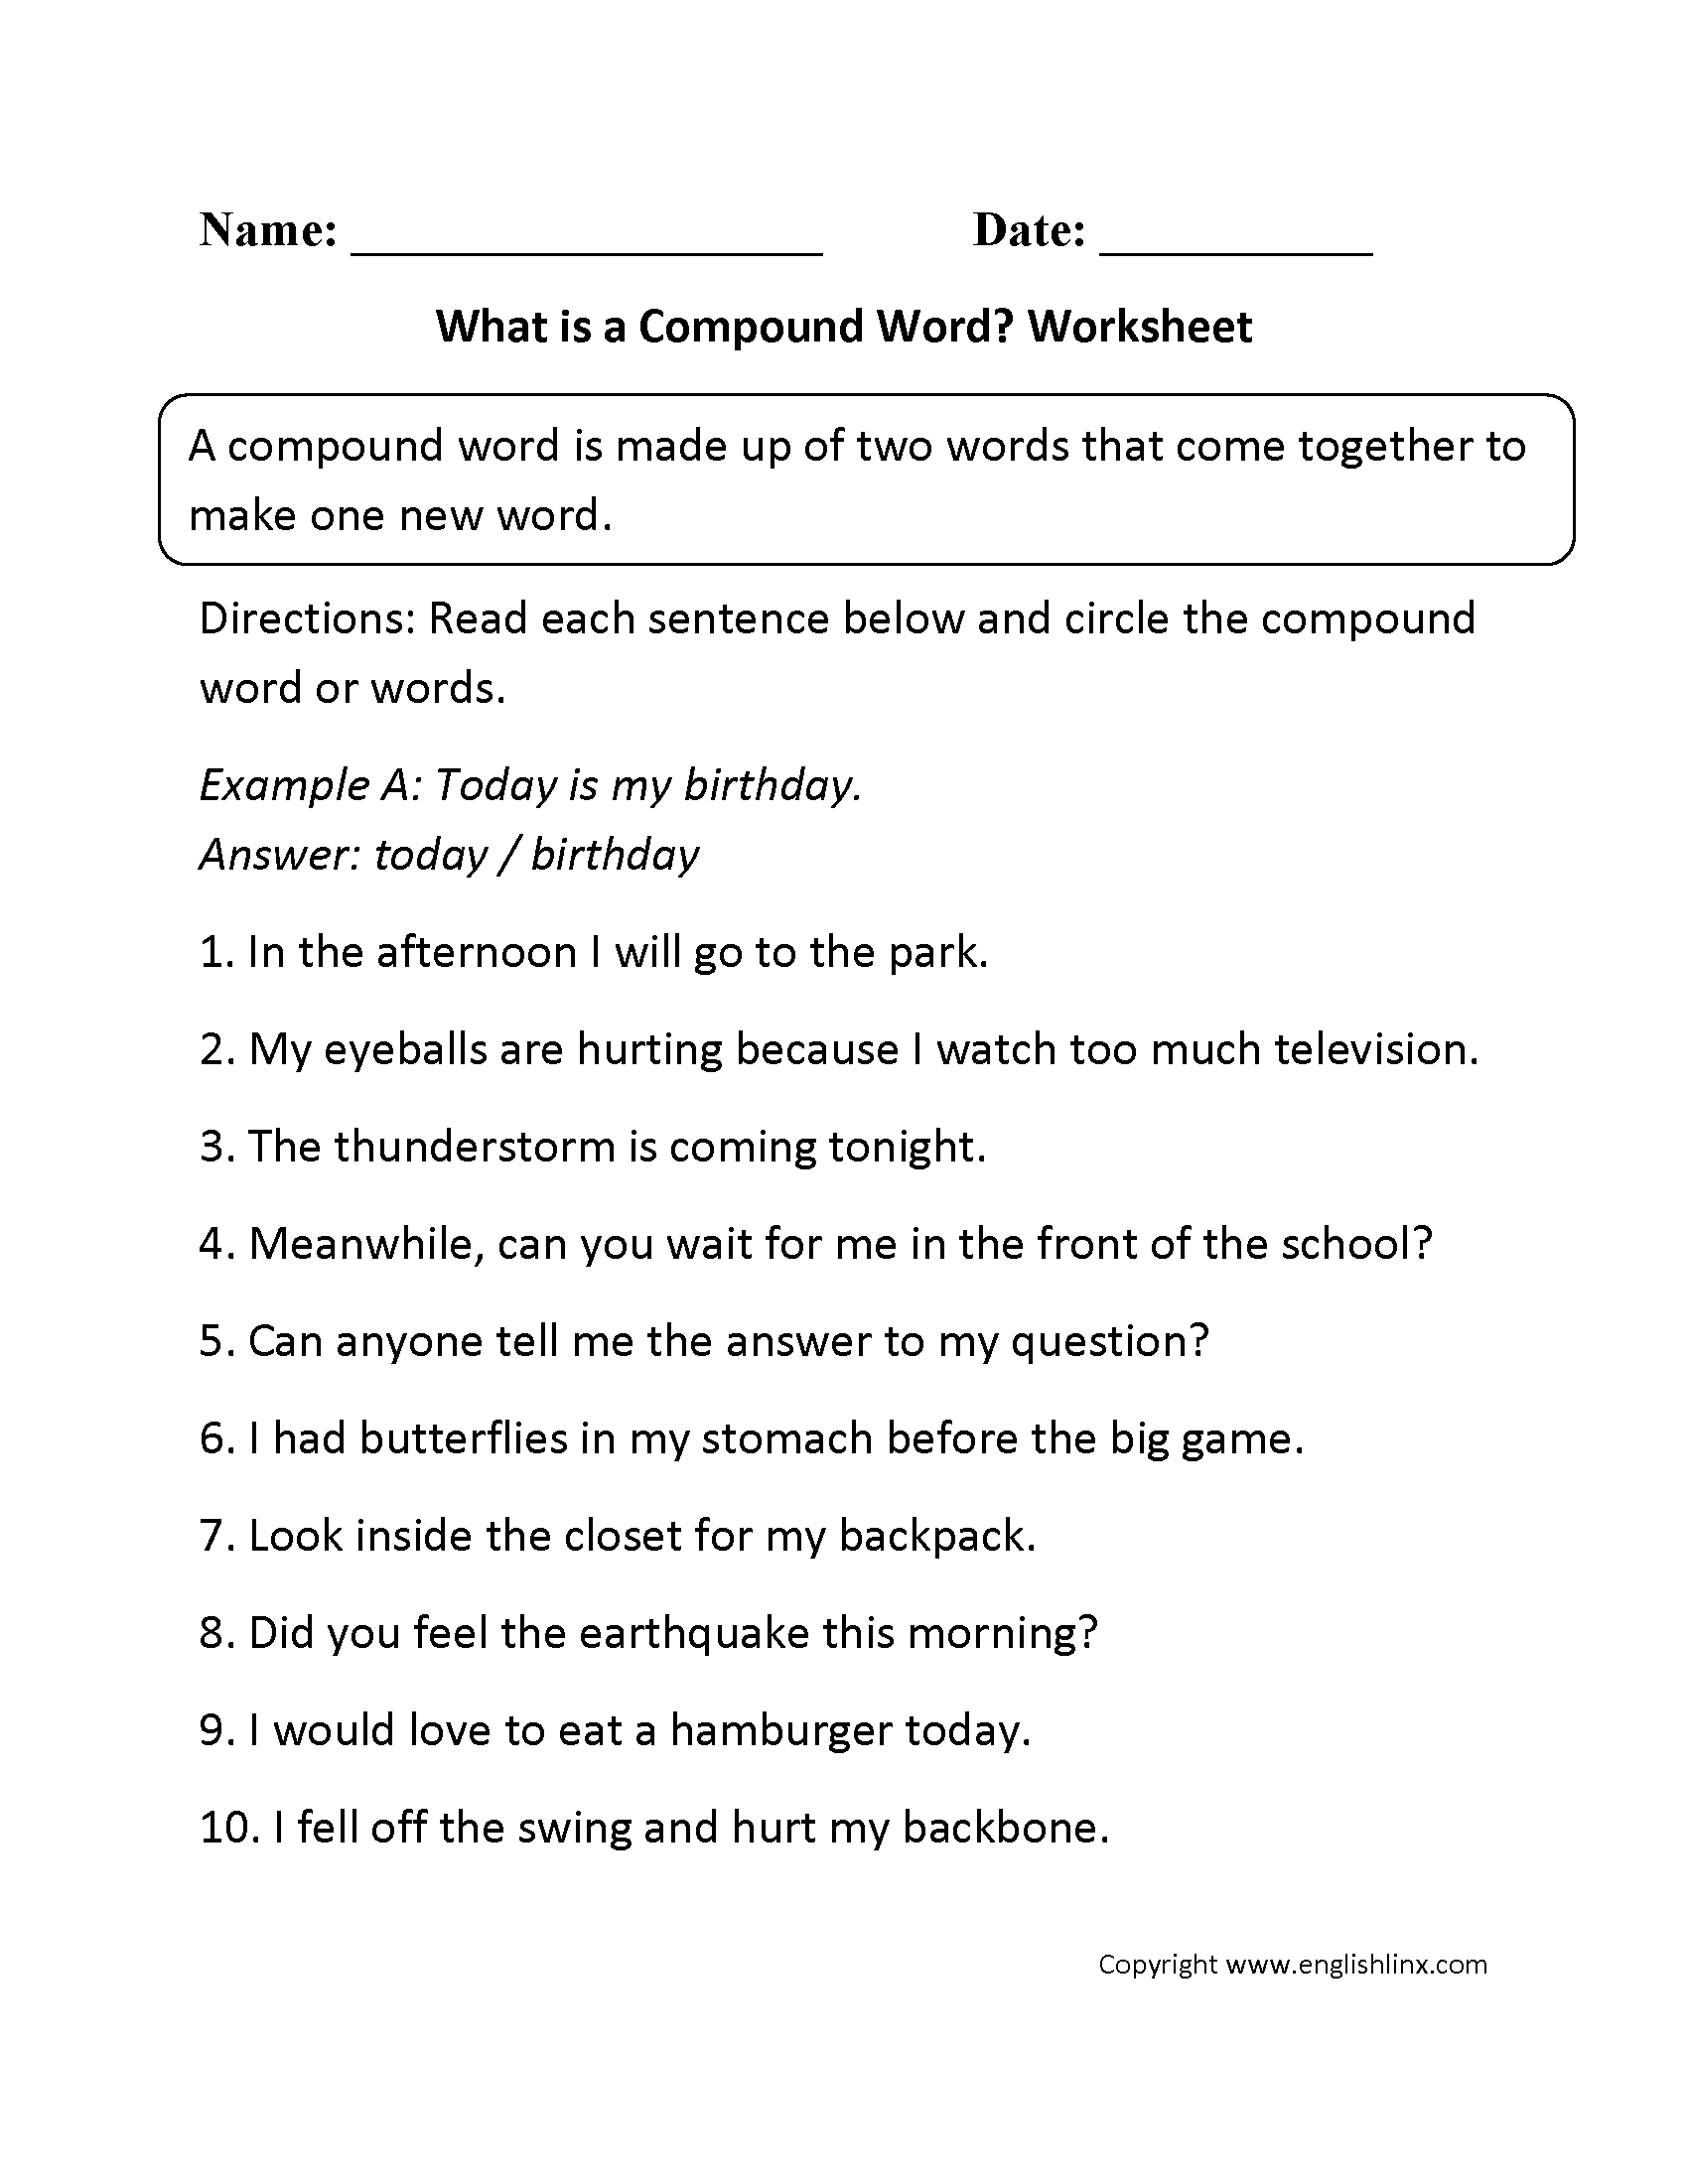 Compound Worksheet For 1st Grade